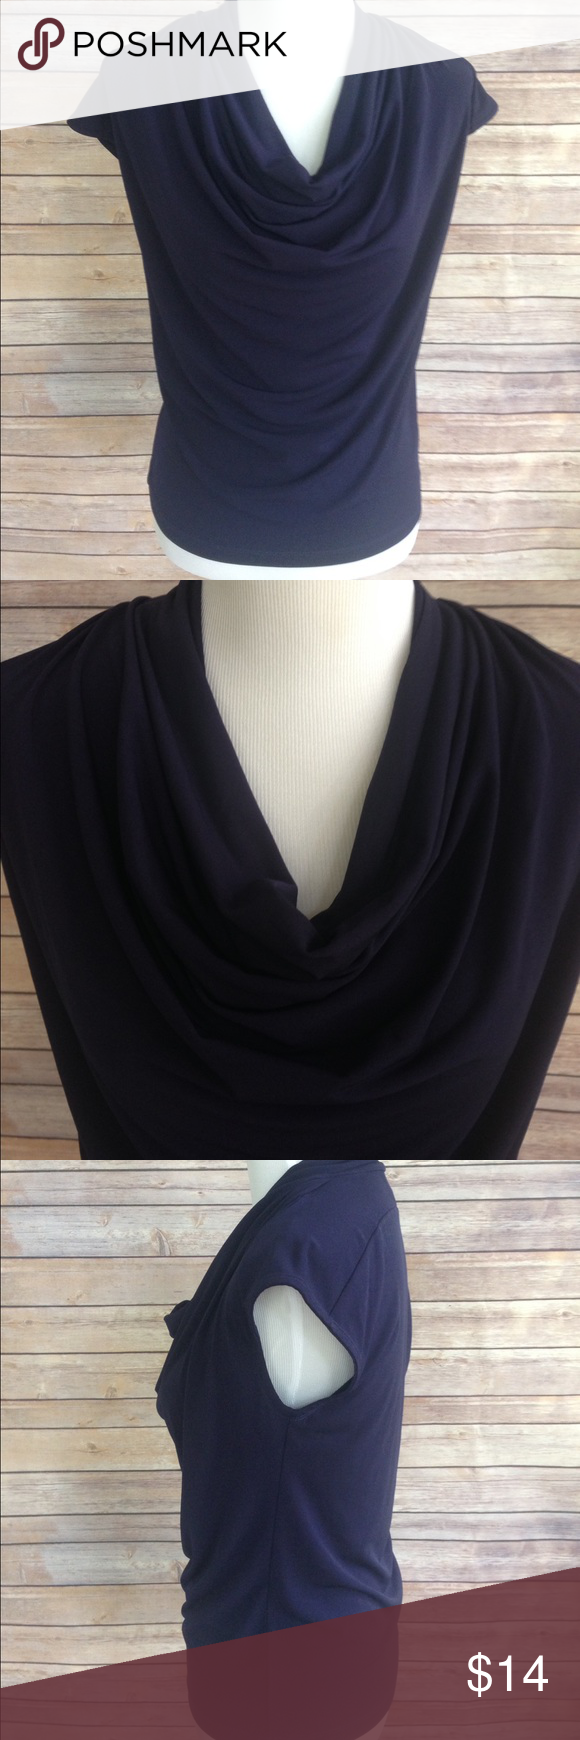 "Ann Klein Cowl Neck Short Sleeve Top Ann Klein Navy Blue Short Sleeve stretchy career top with a lovely cowl neck. Perfect to wear under a blazer, cardigan or on its own. Measurements: Bust: 17"" Waist: 17"" Sleeve Length: 6.5"" (from neckline) Length: 22"" Ann Klein Tops"